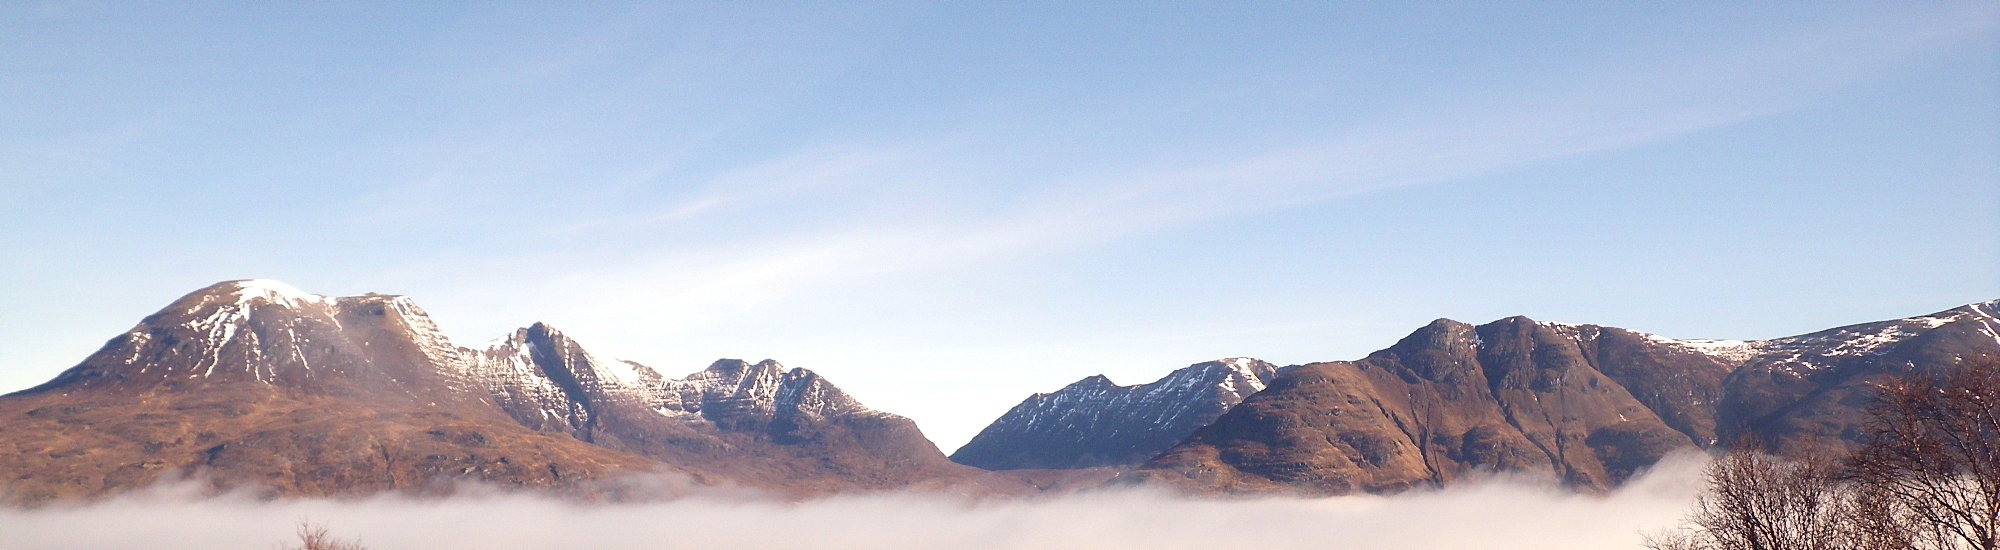 View of The Torridon Giants on a beautiful day with a cloud inversion